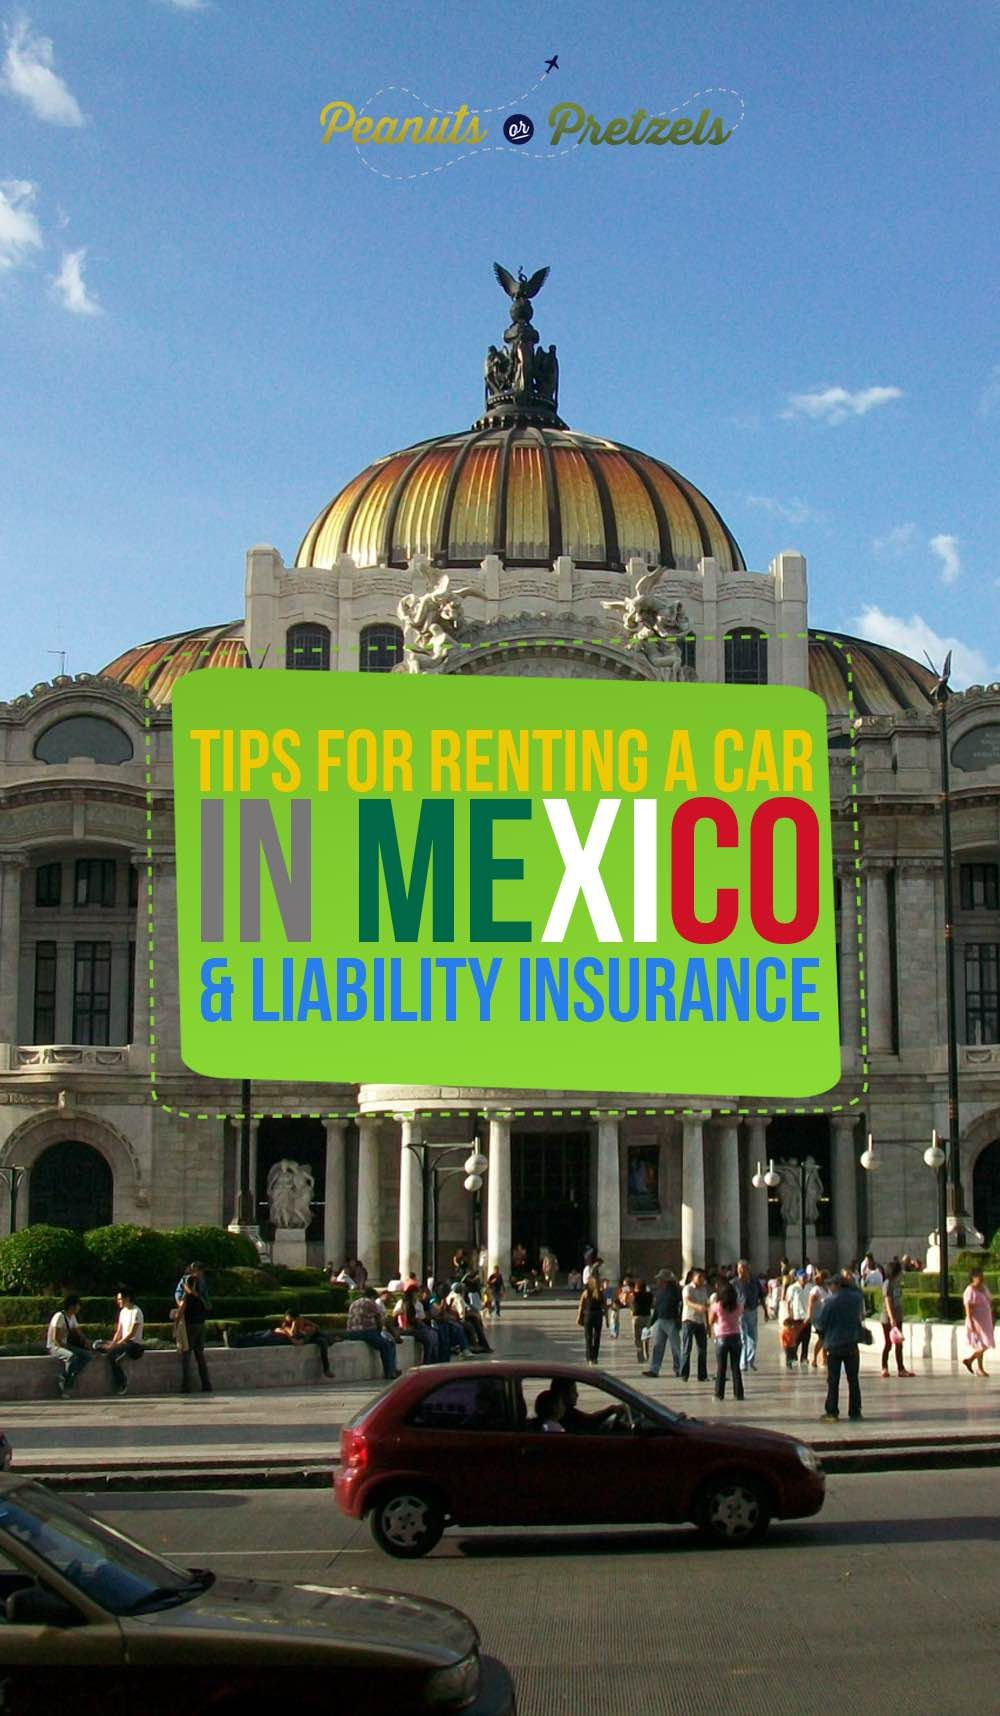 Mexican Auto Insurance If I M Renting A Car In Mexico